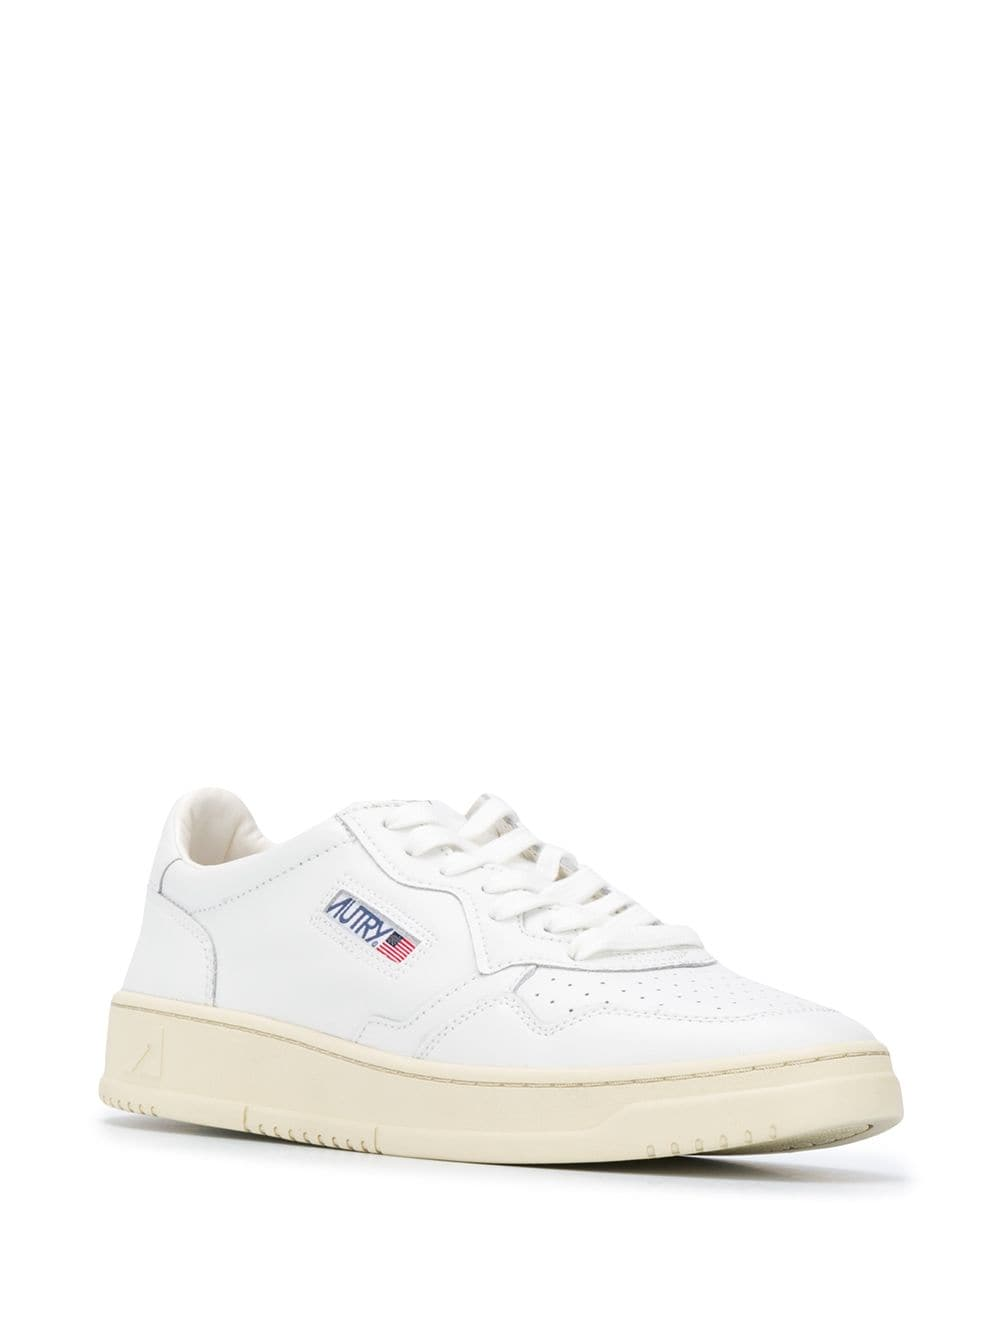 Autry action low sneakers man white AUTRY | Sneakers | AULMLL15WHITE